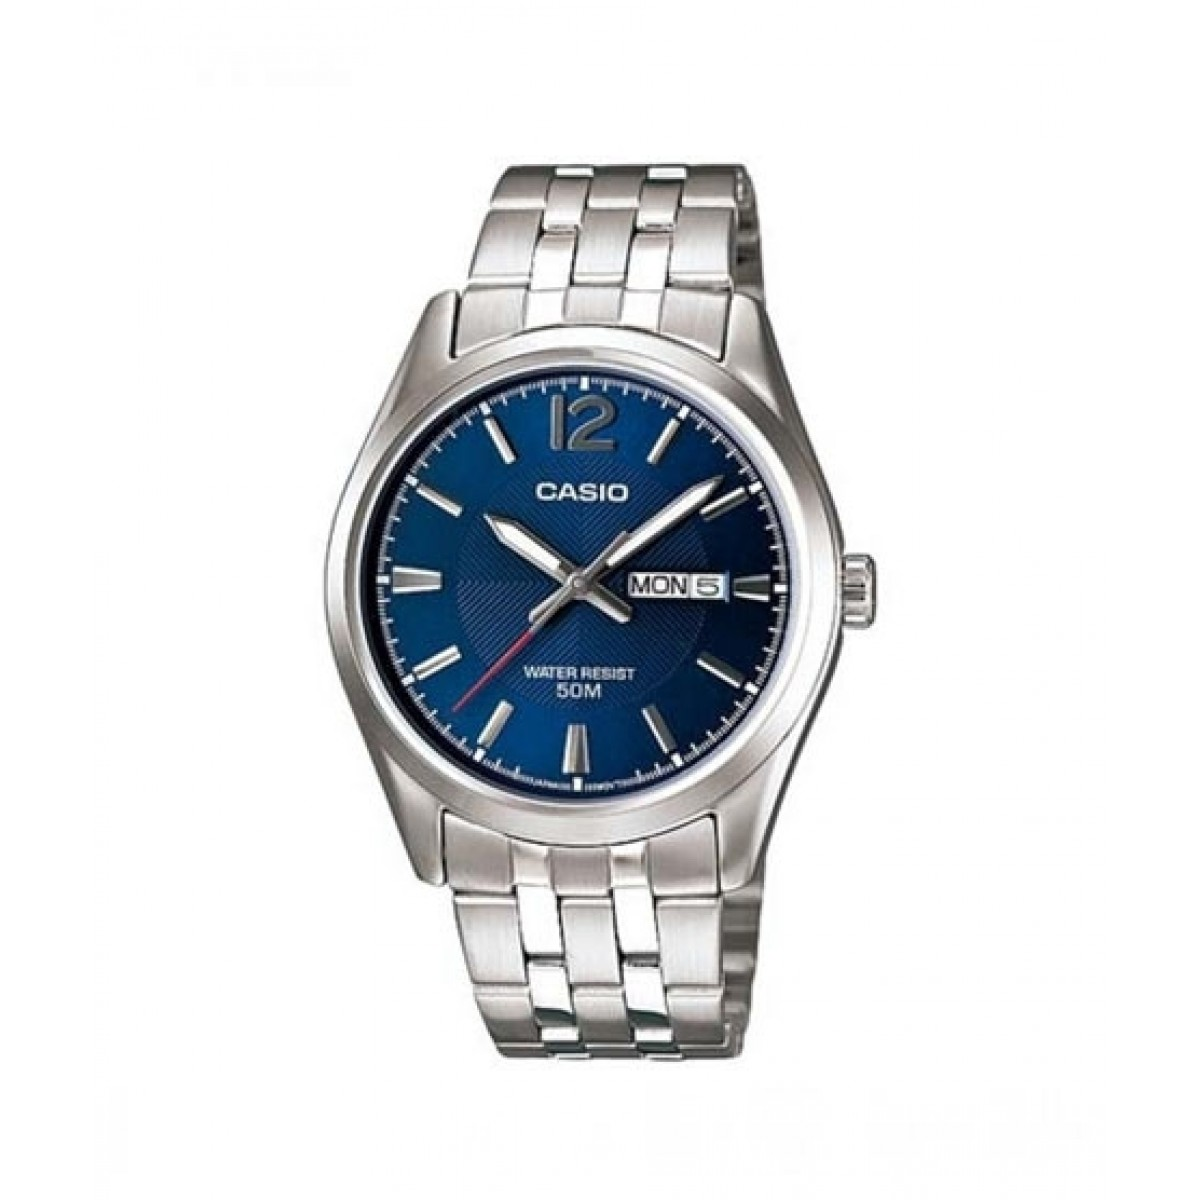 Casio Dress Analog Watch For Men (MTP-1335D-1A2VDF)